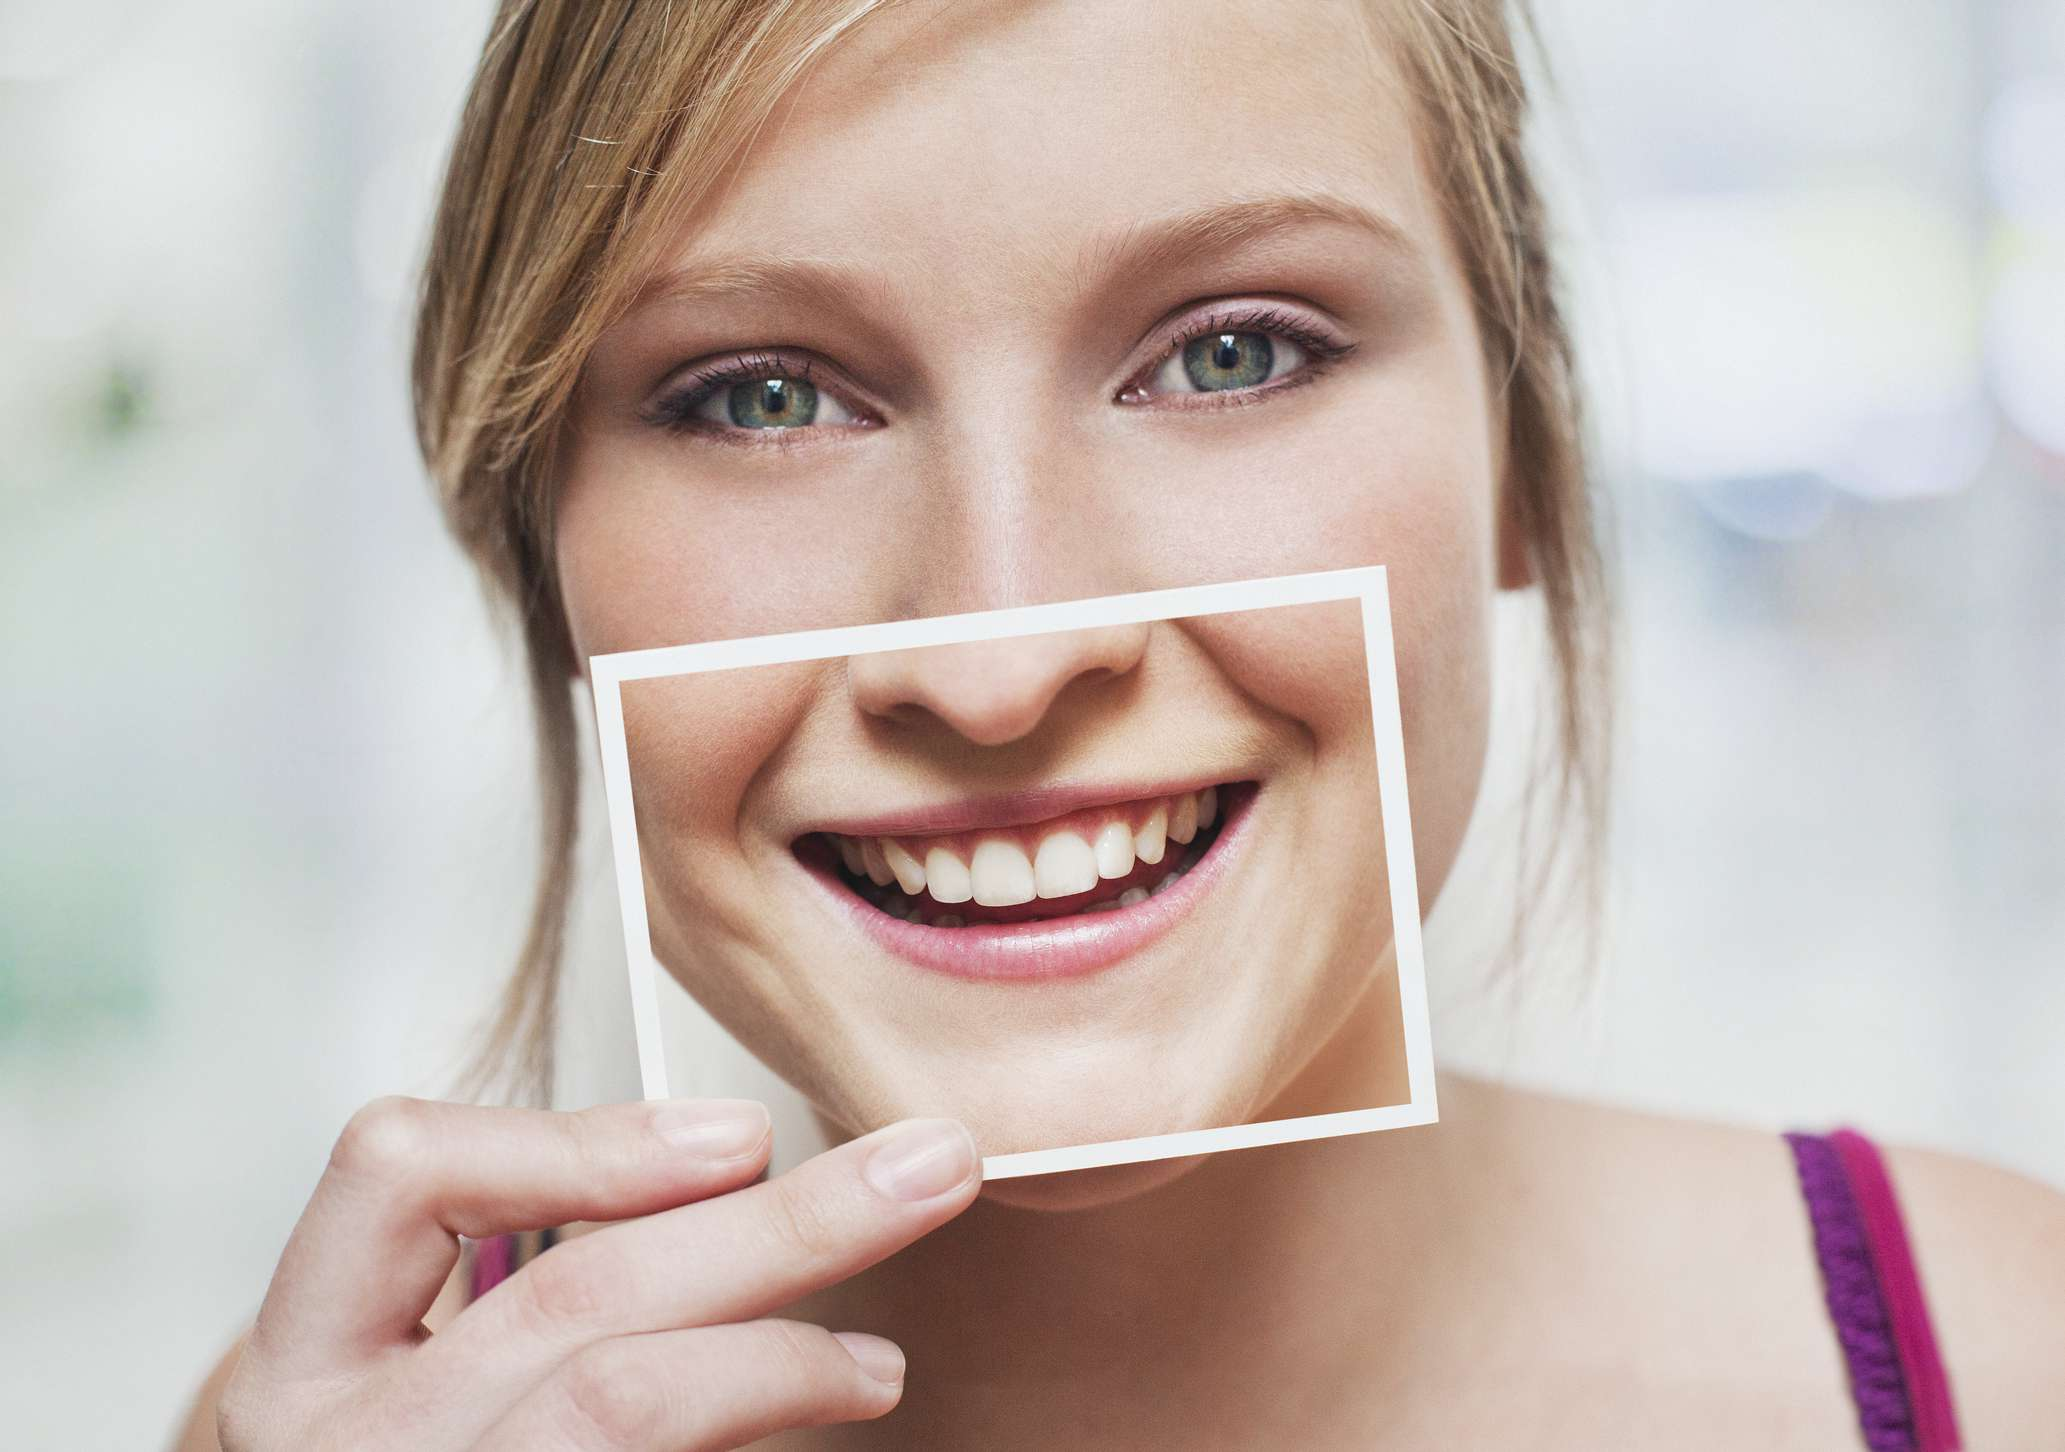 woman with perfect teeth